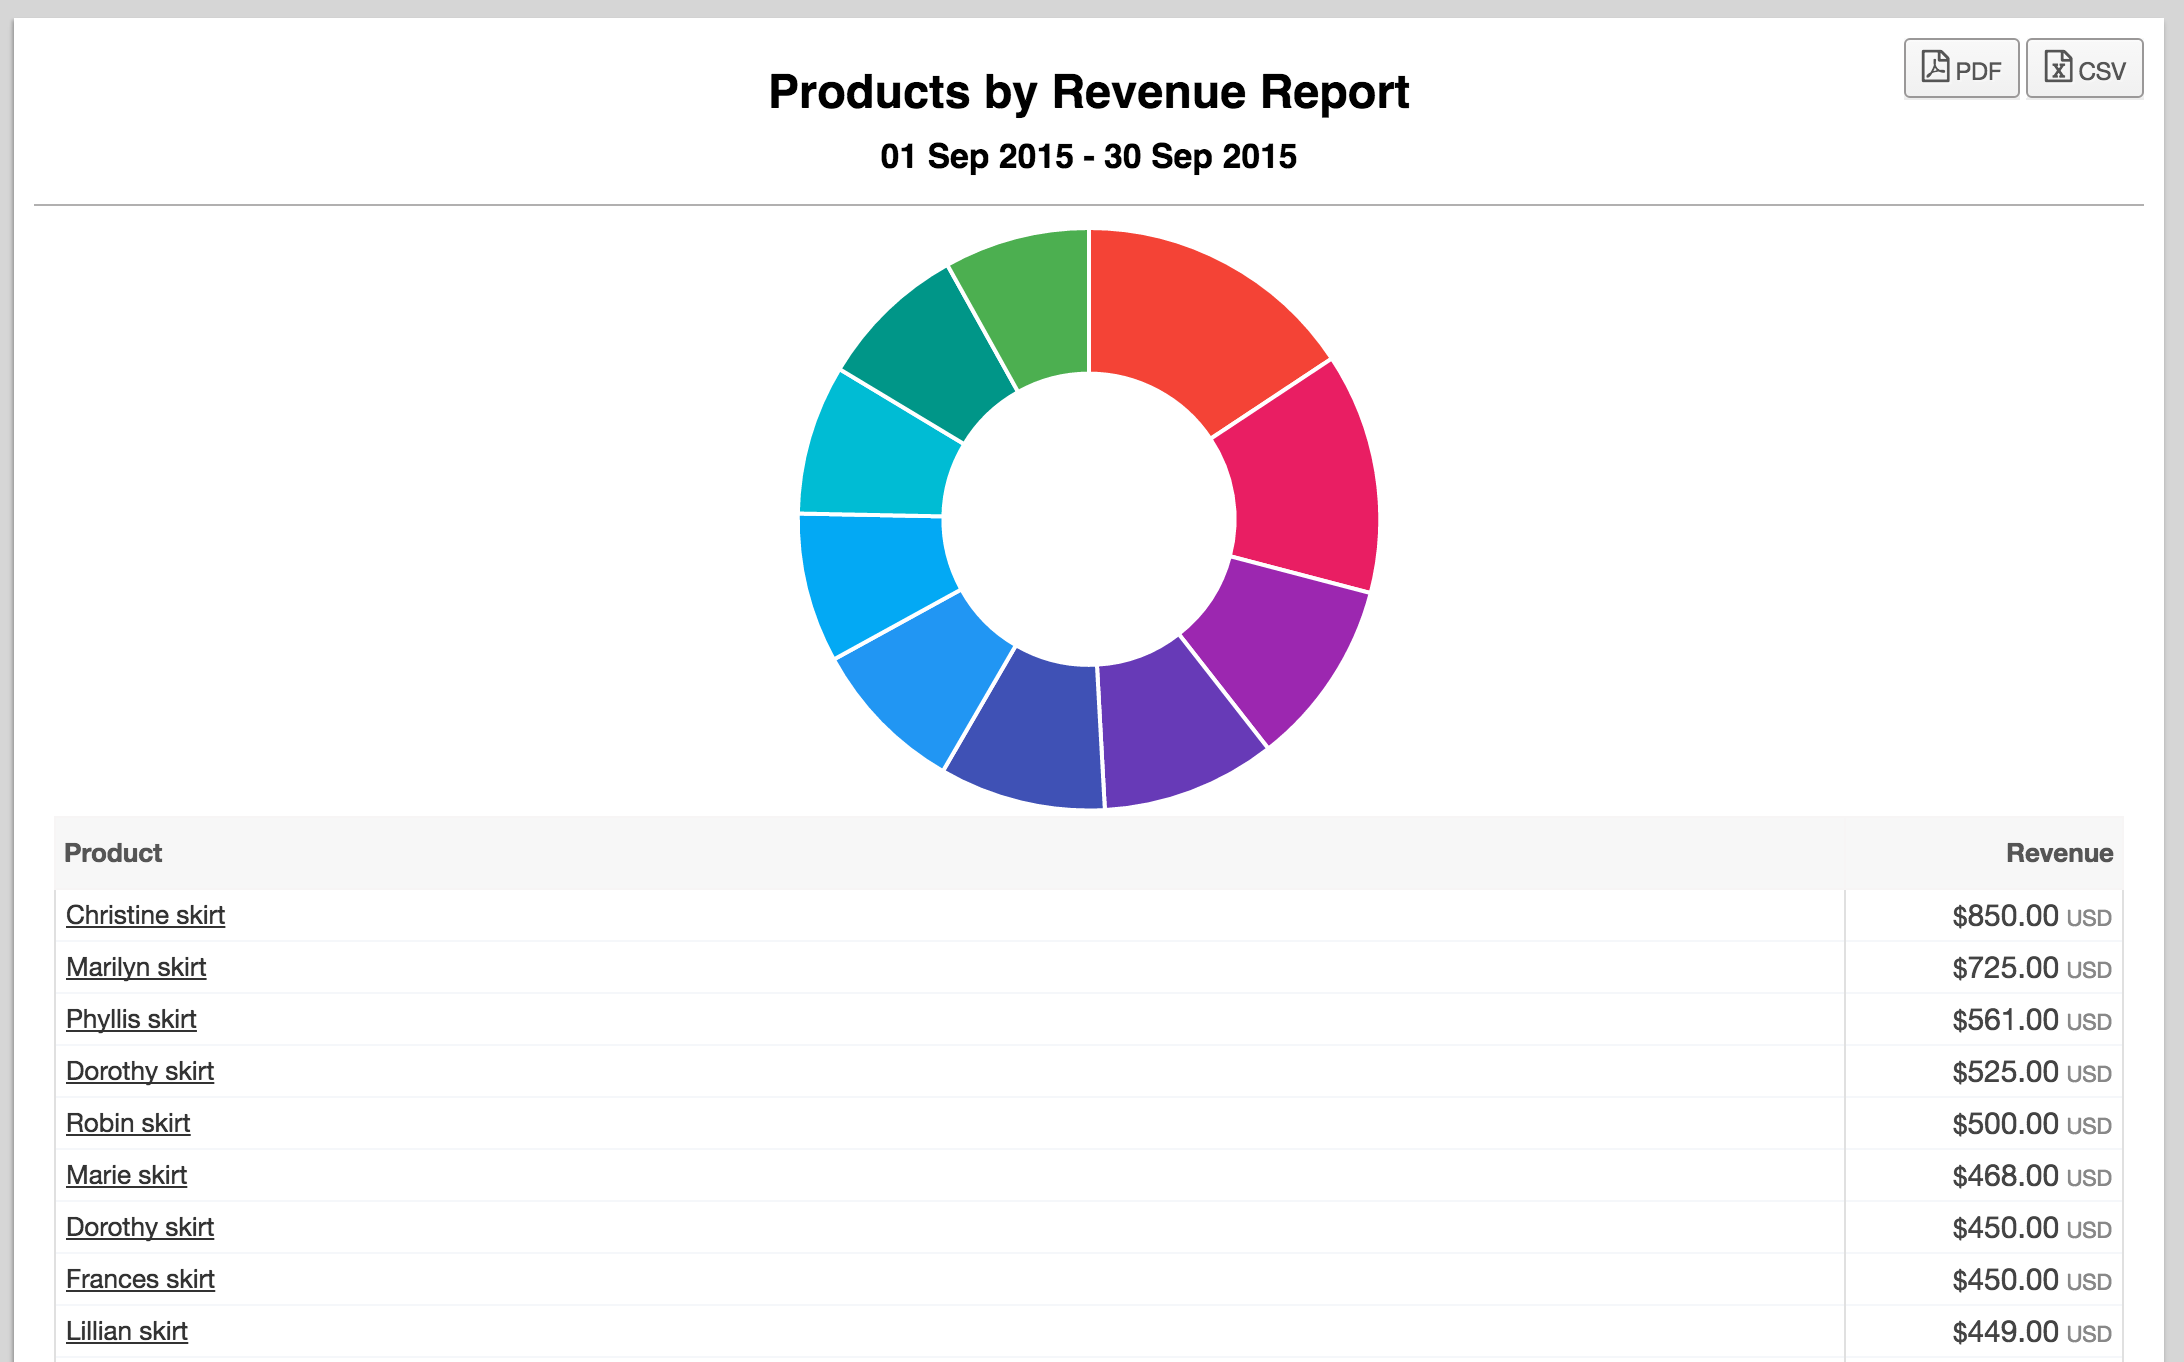 products by revenue report